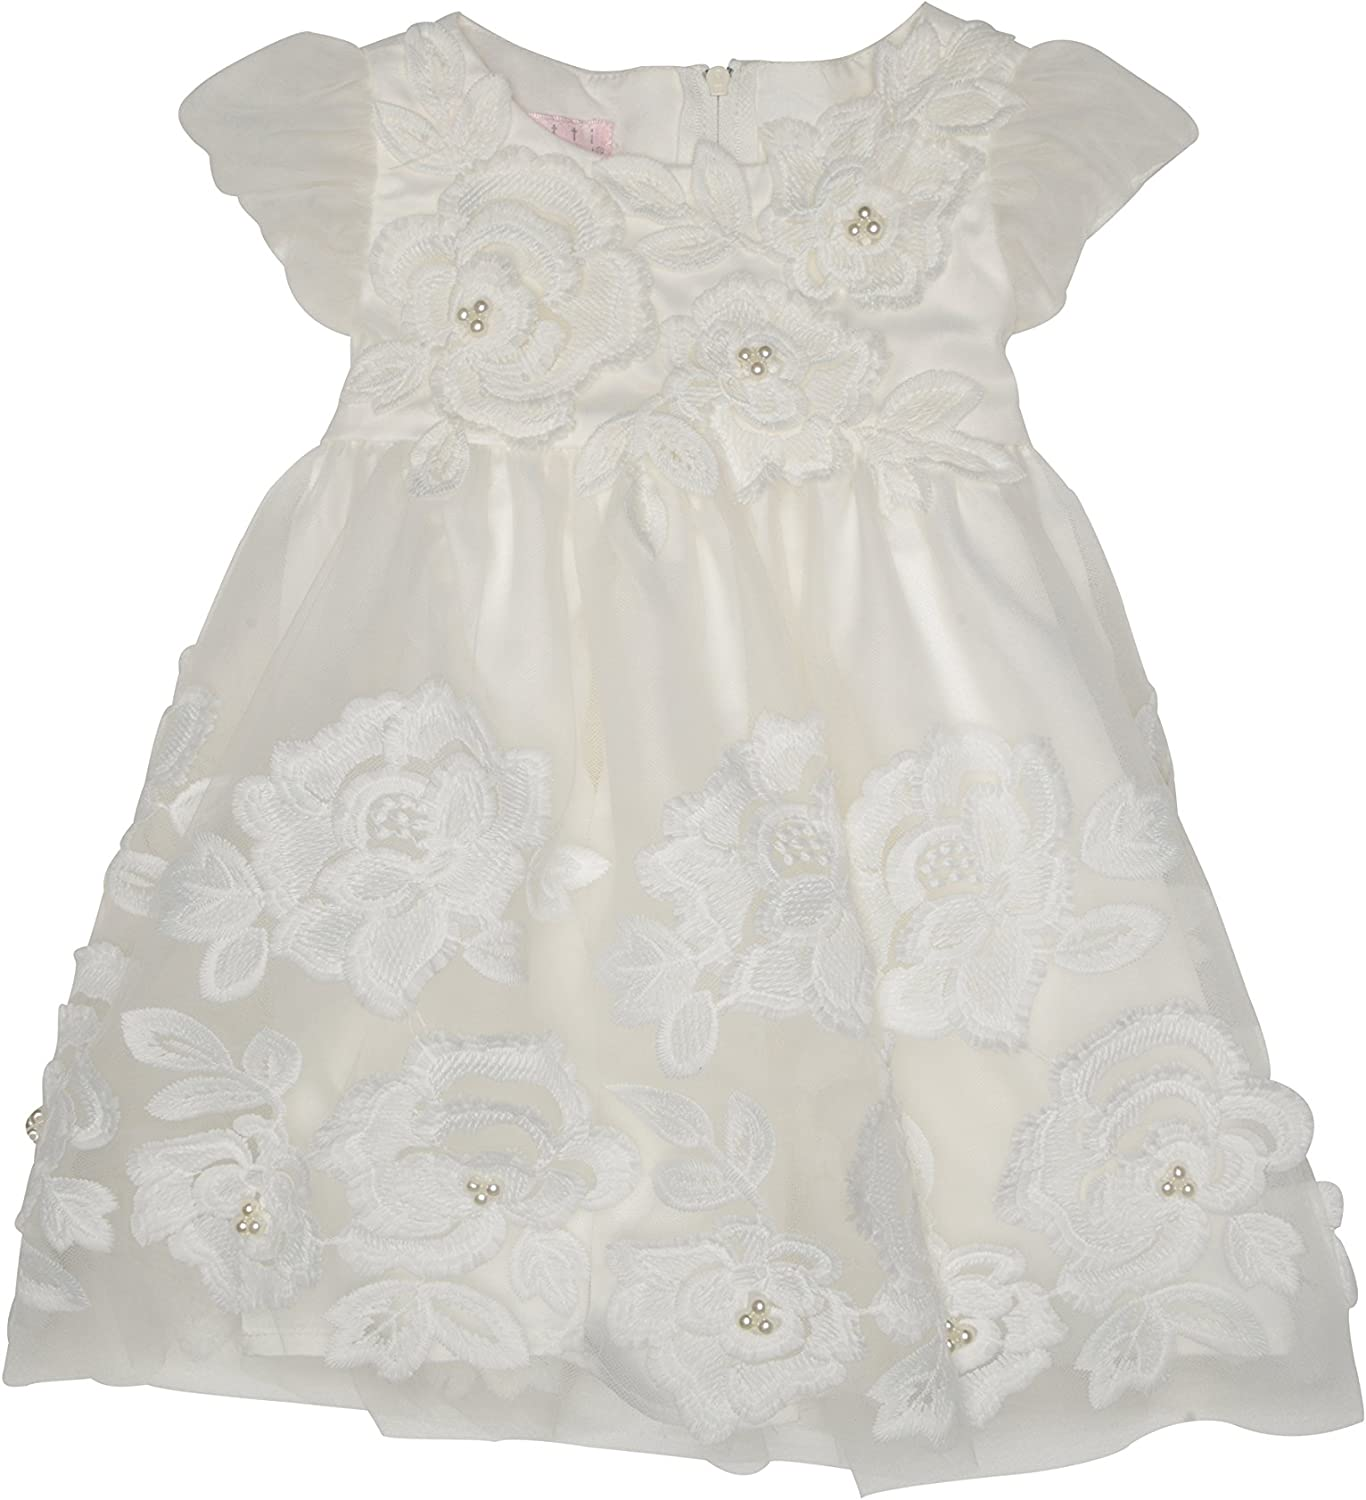 Biscotti Max 55% OFF Girl's Max 71% OFF 2-6X Dress Party Wedding